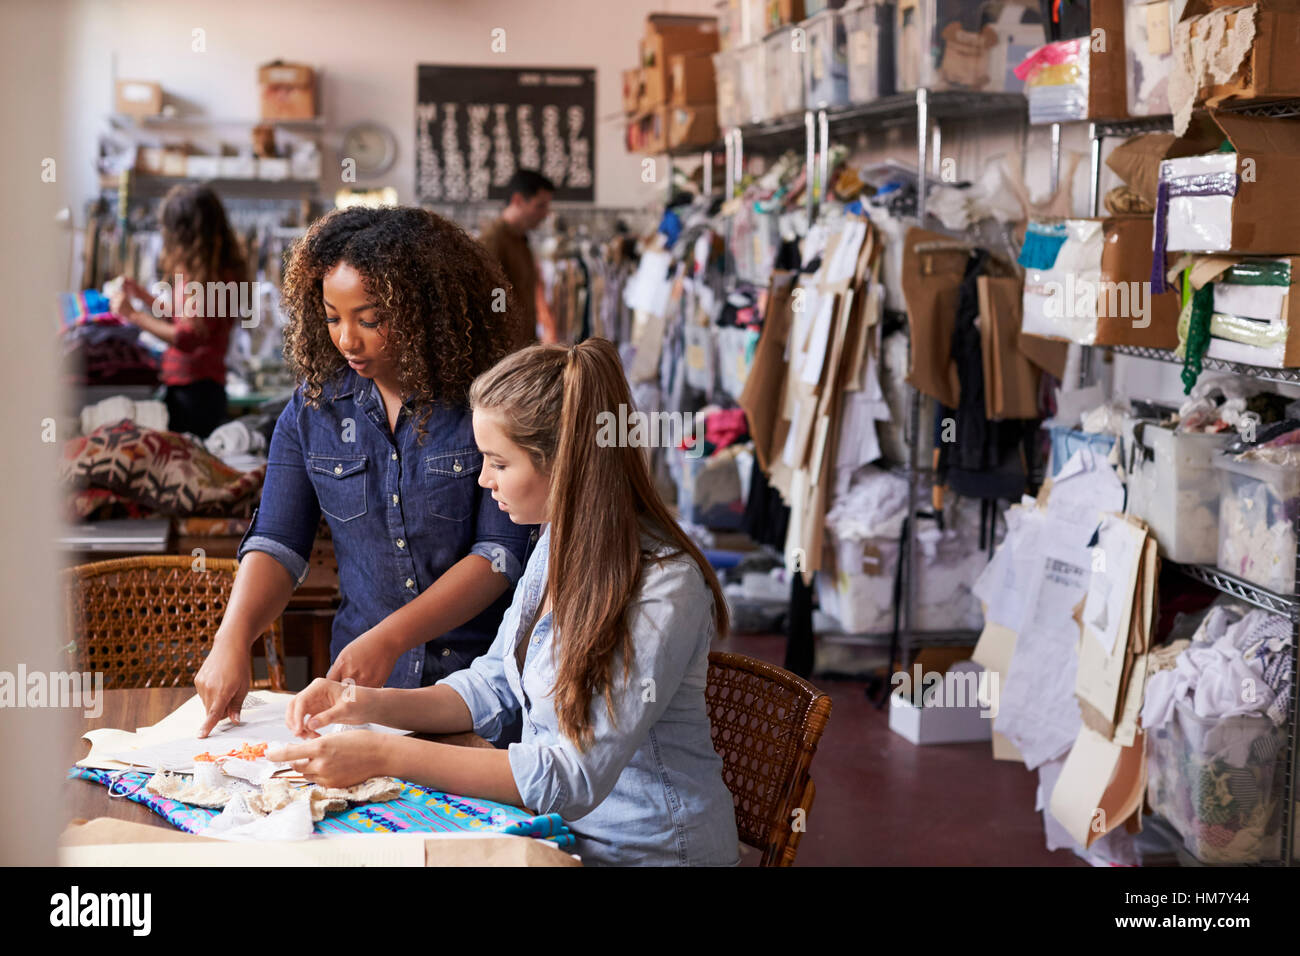 Woman stands to train an apprentice at clothes design studio - Stock Image